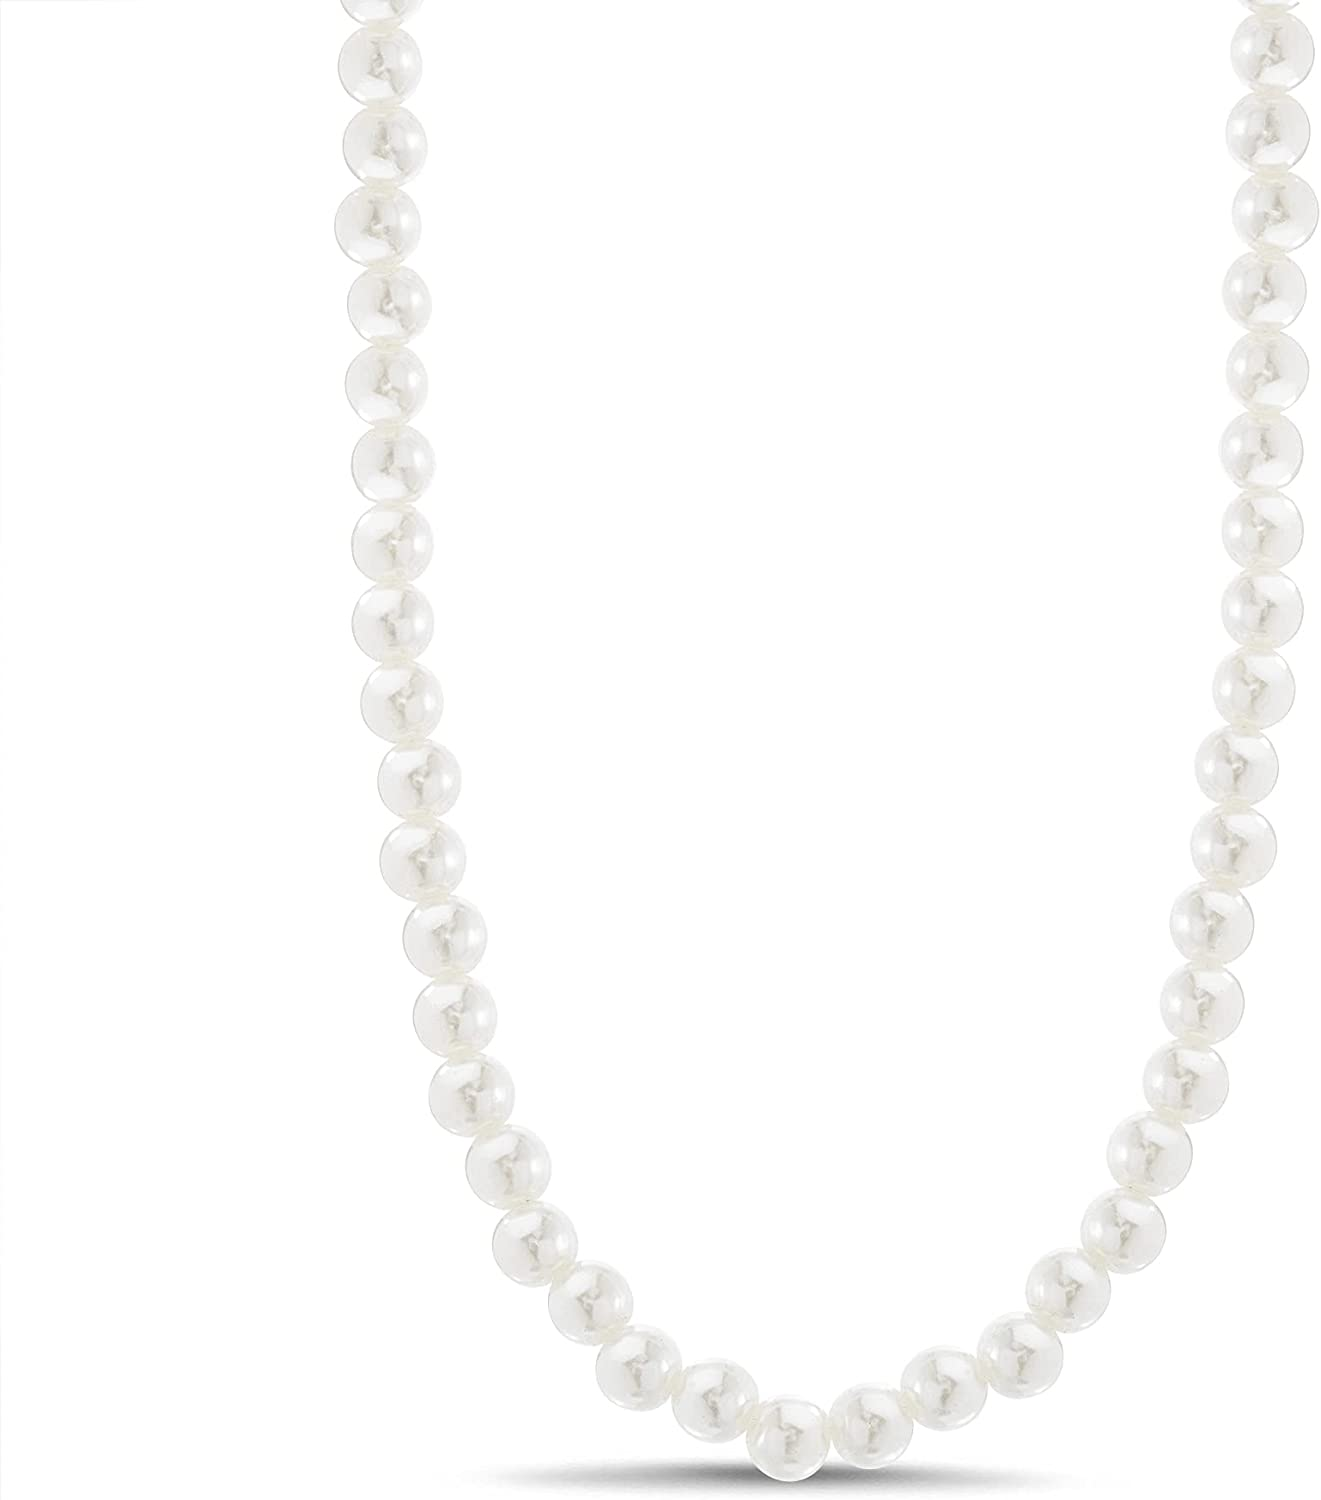 Steve Madden 32 Inch Simulated Pearl Necklace for Women with Carabiner Closure